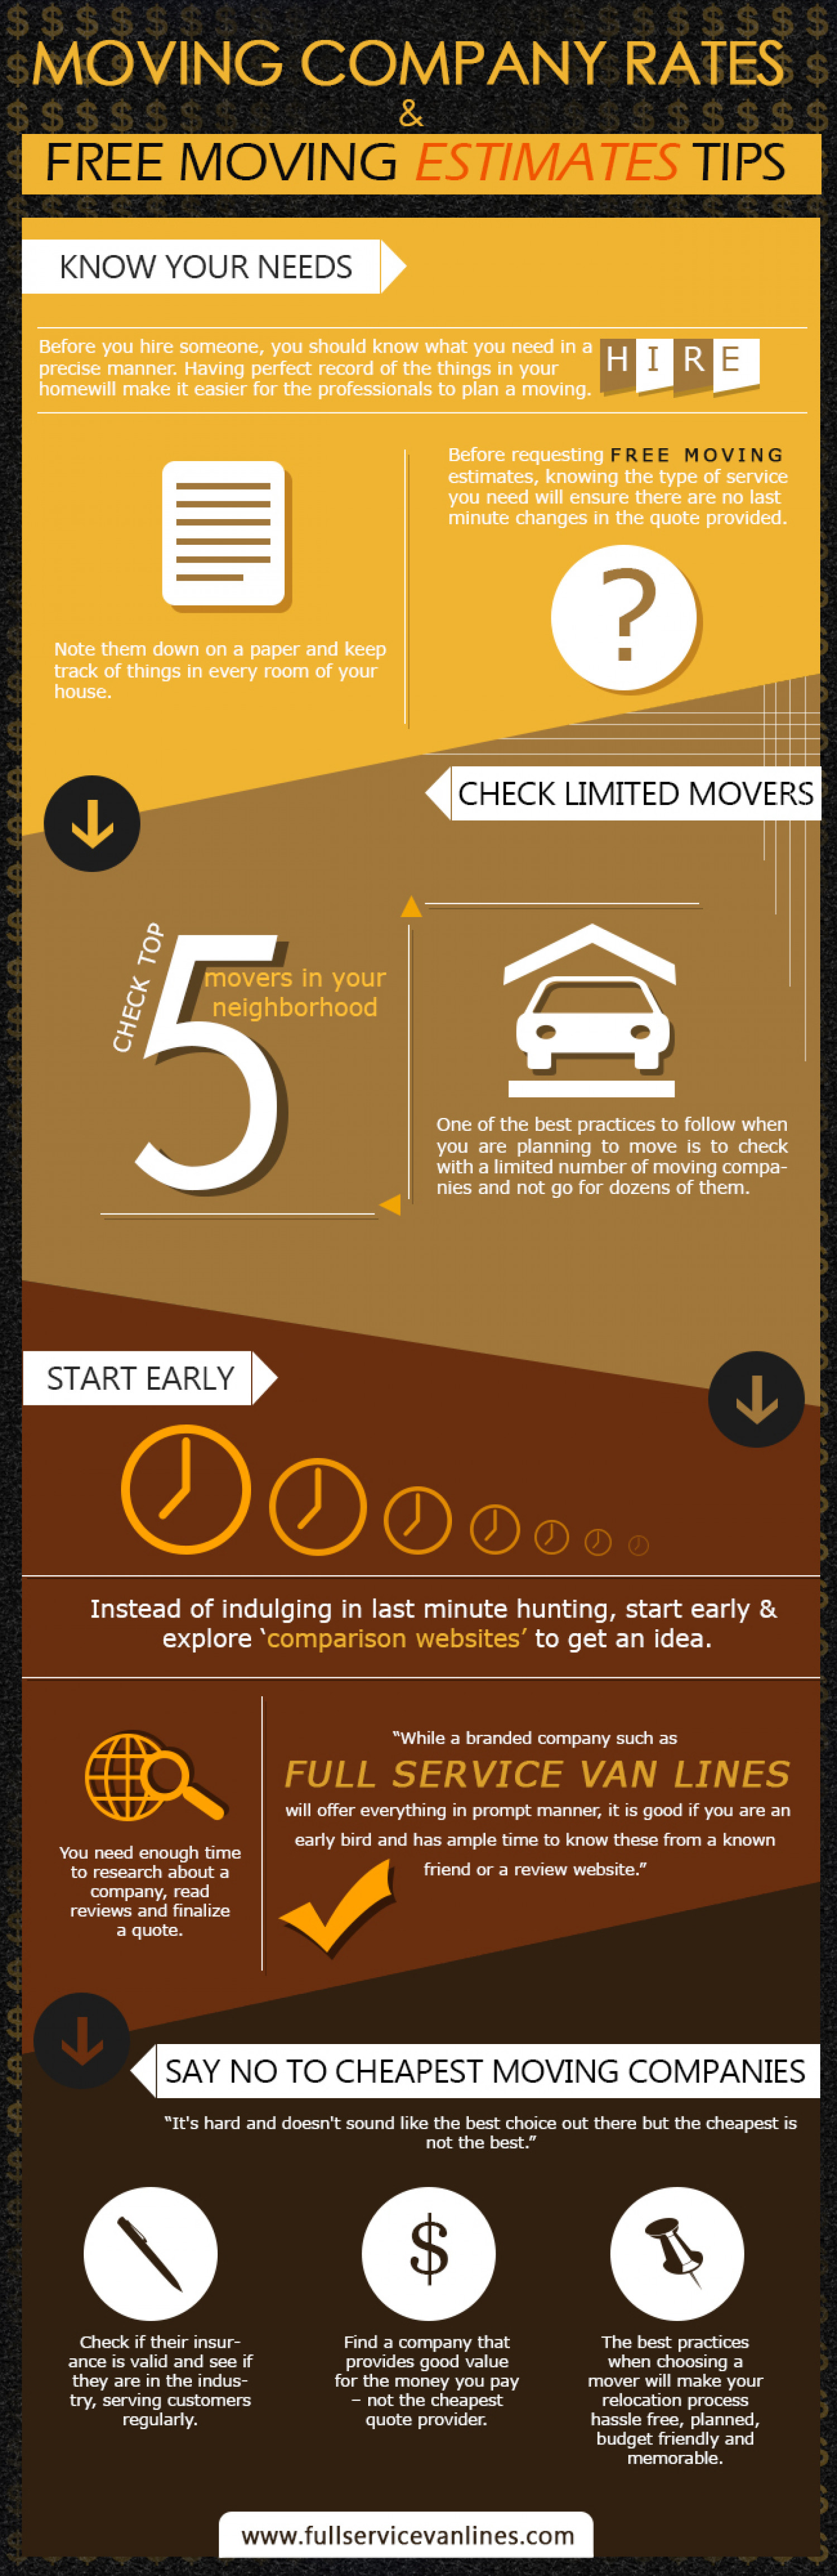 Moving Company Rates & Free Moving Estimates Tips Infographic